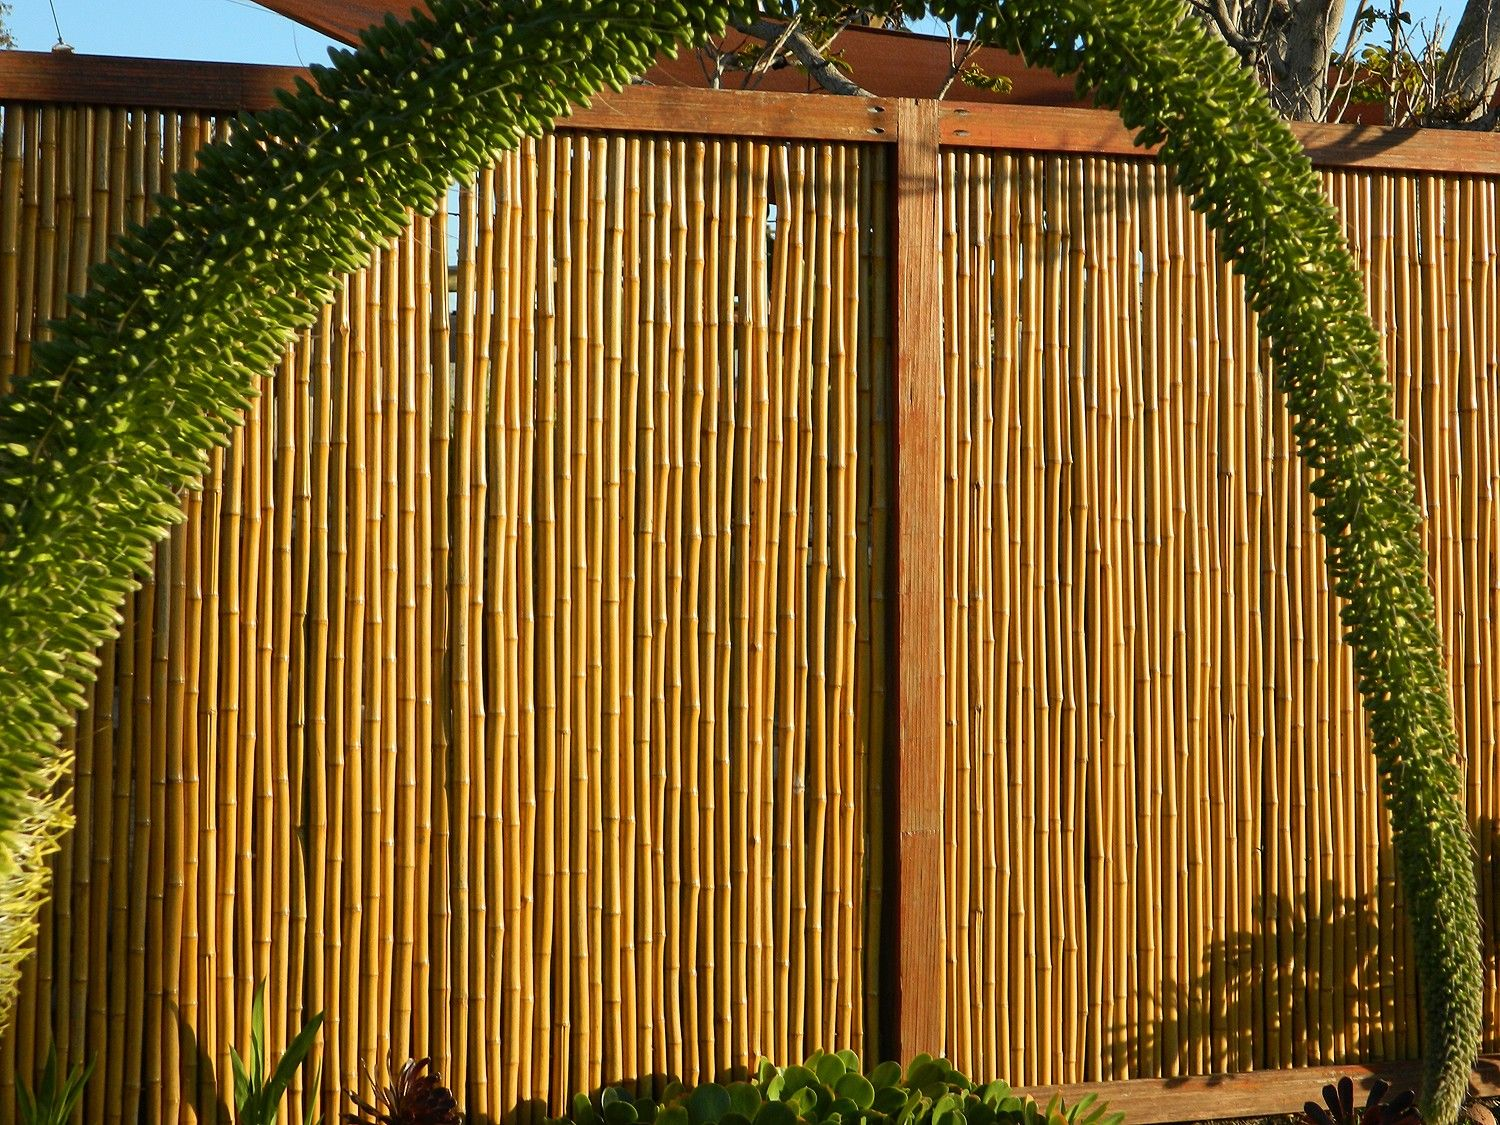 find this pin and more on bamboo fencing by